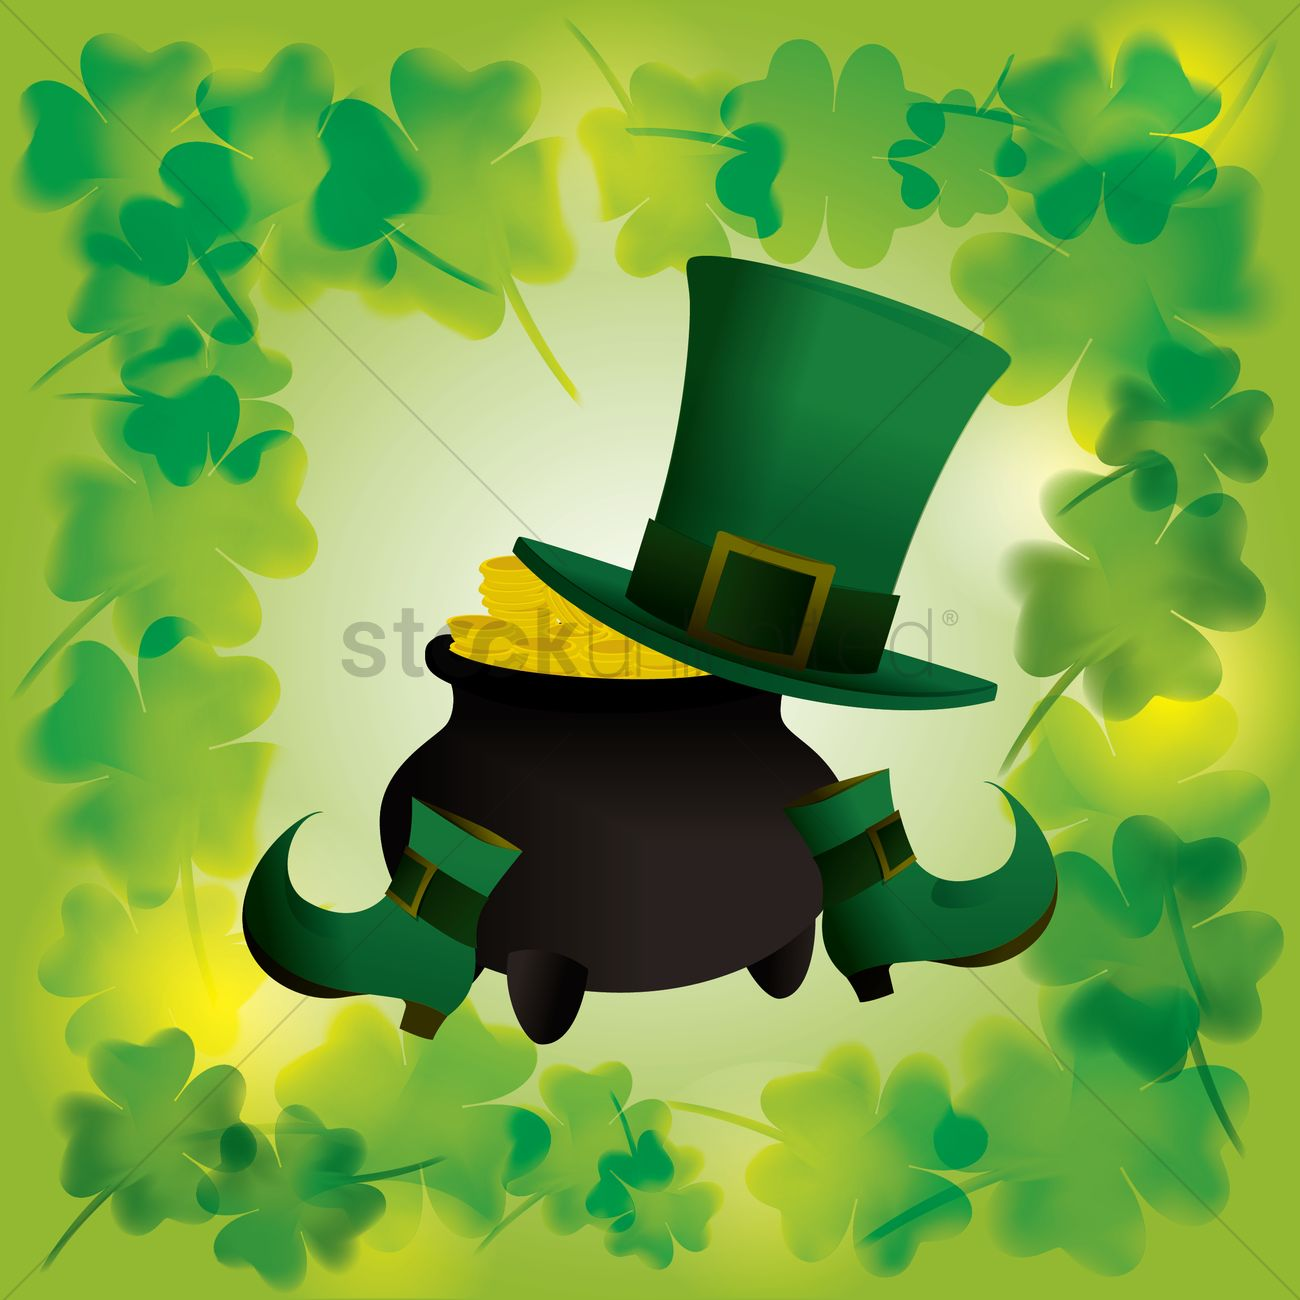 St Patrick S Day Wallpaper Vector Image 1481959